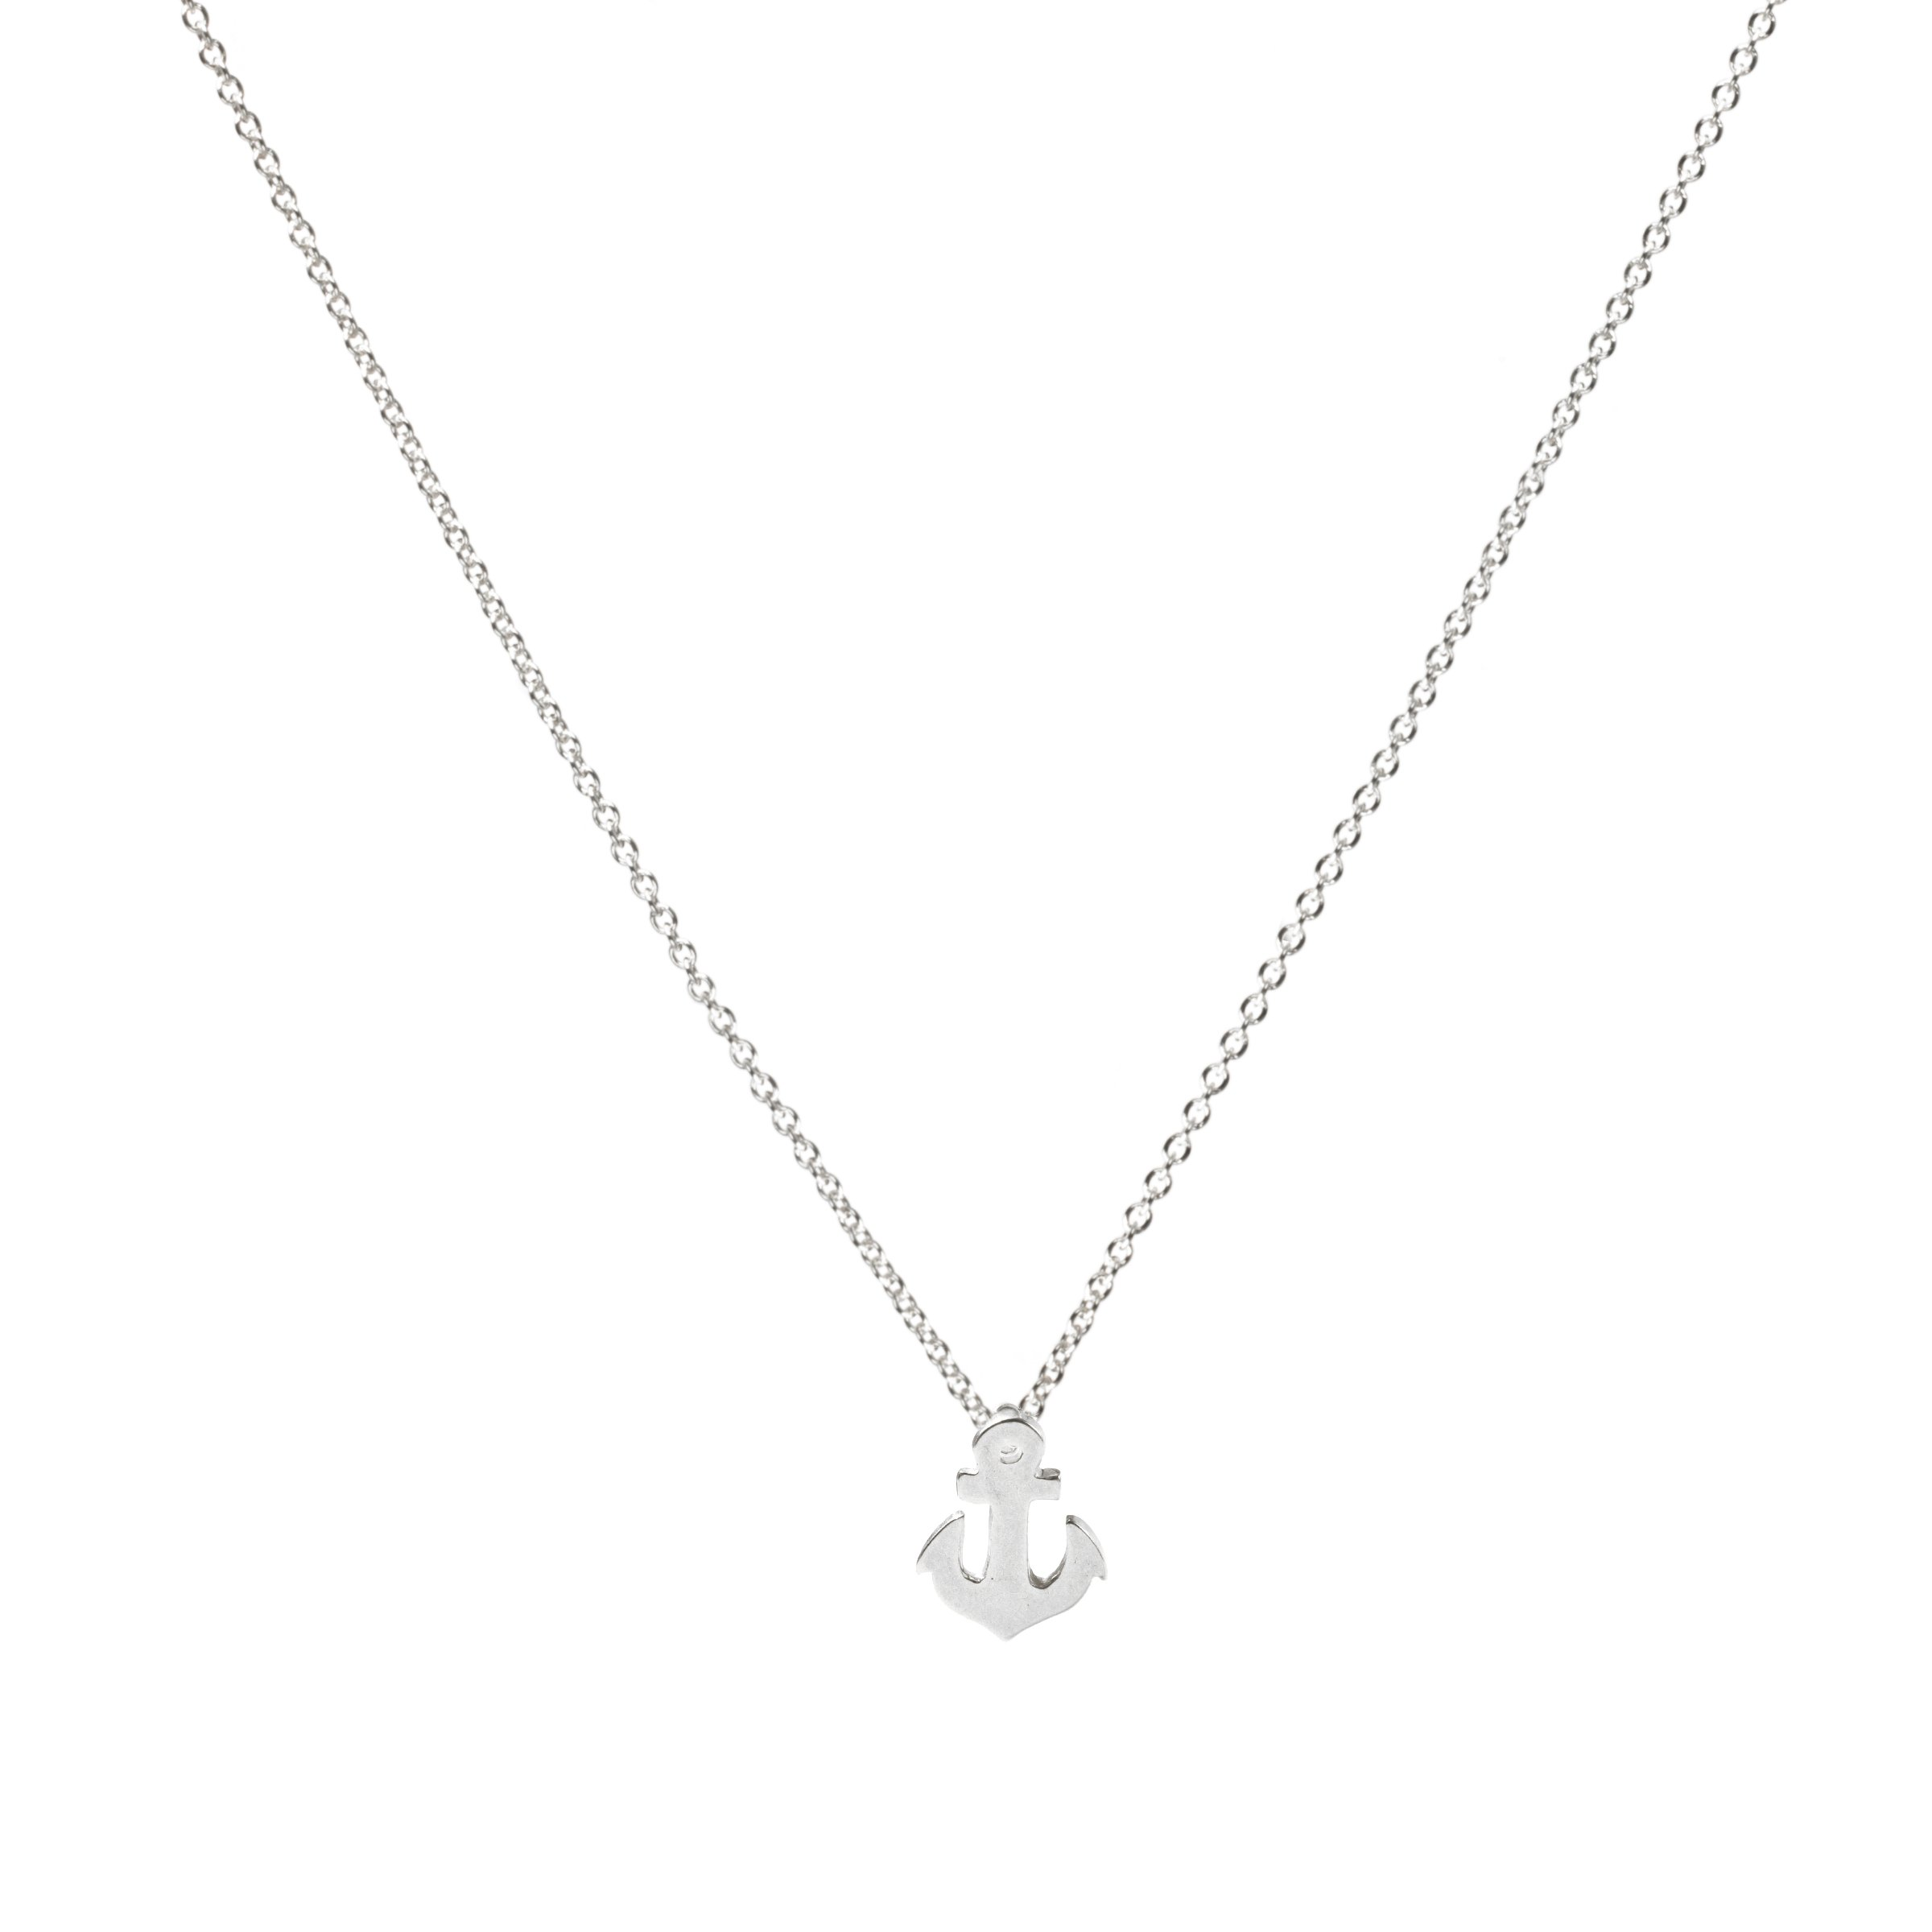 Silver Friendship Anchor Necklace